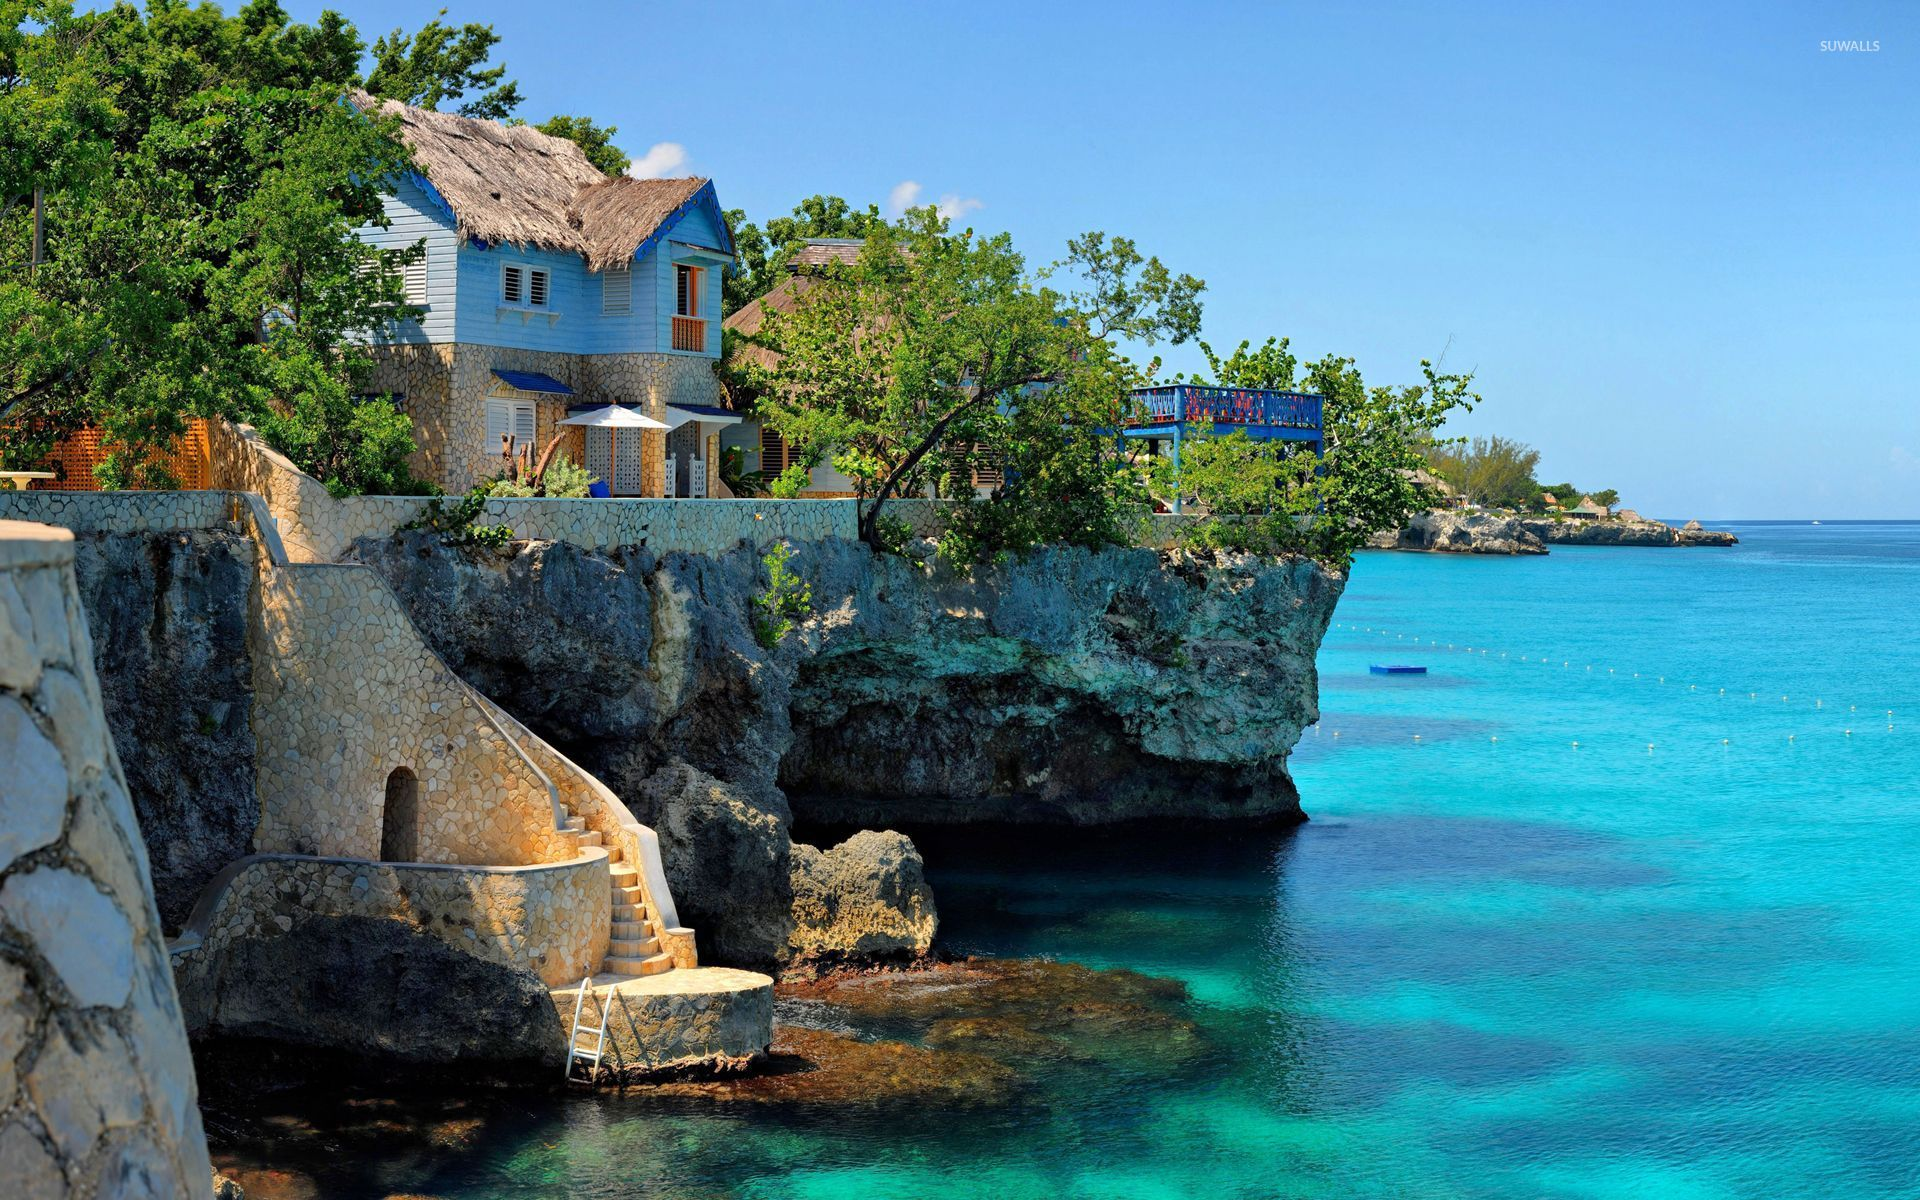 Coastal house in Negril Jamaica wallpaper   Beach wallpapers   26264 1920x1200